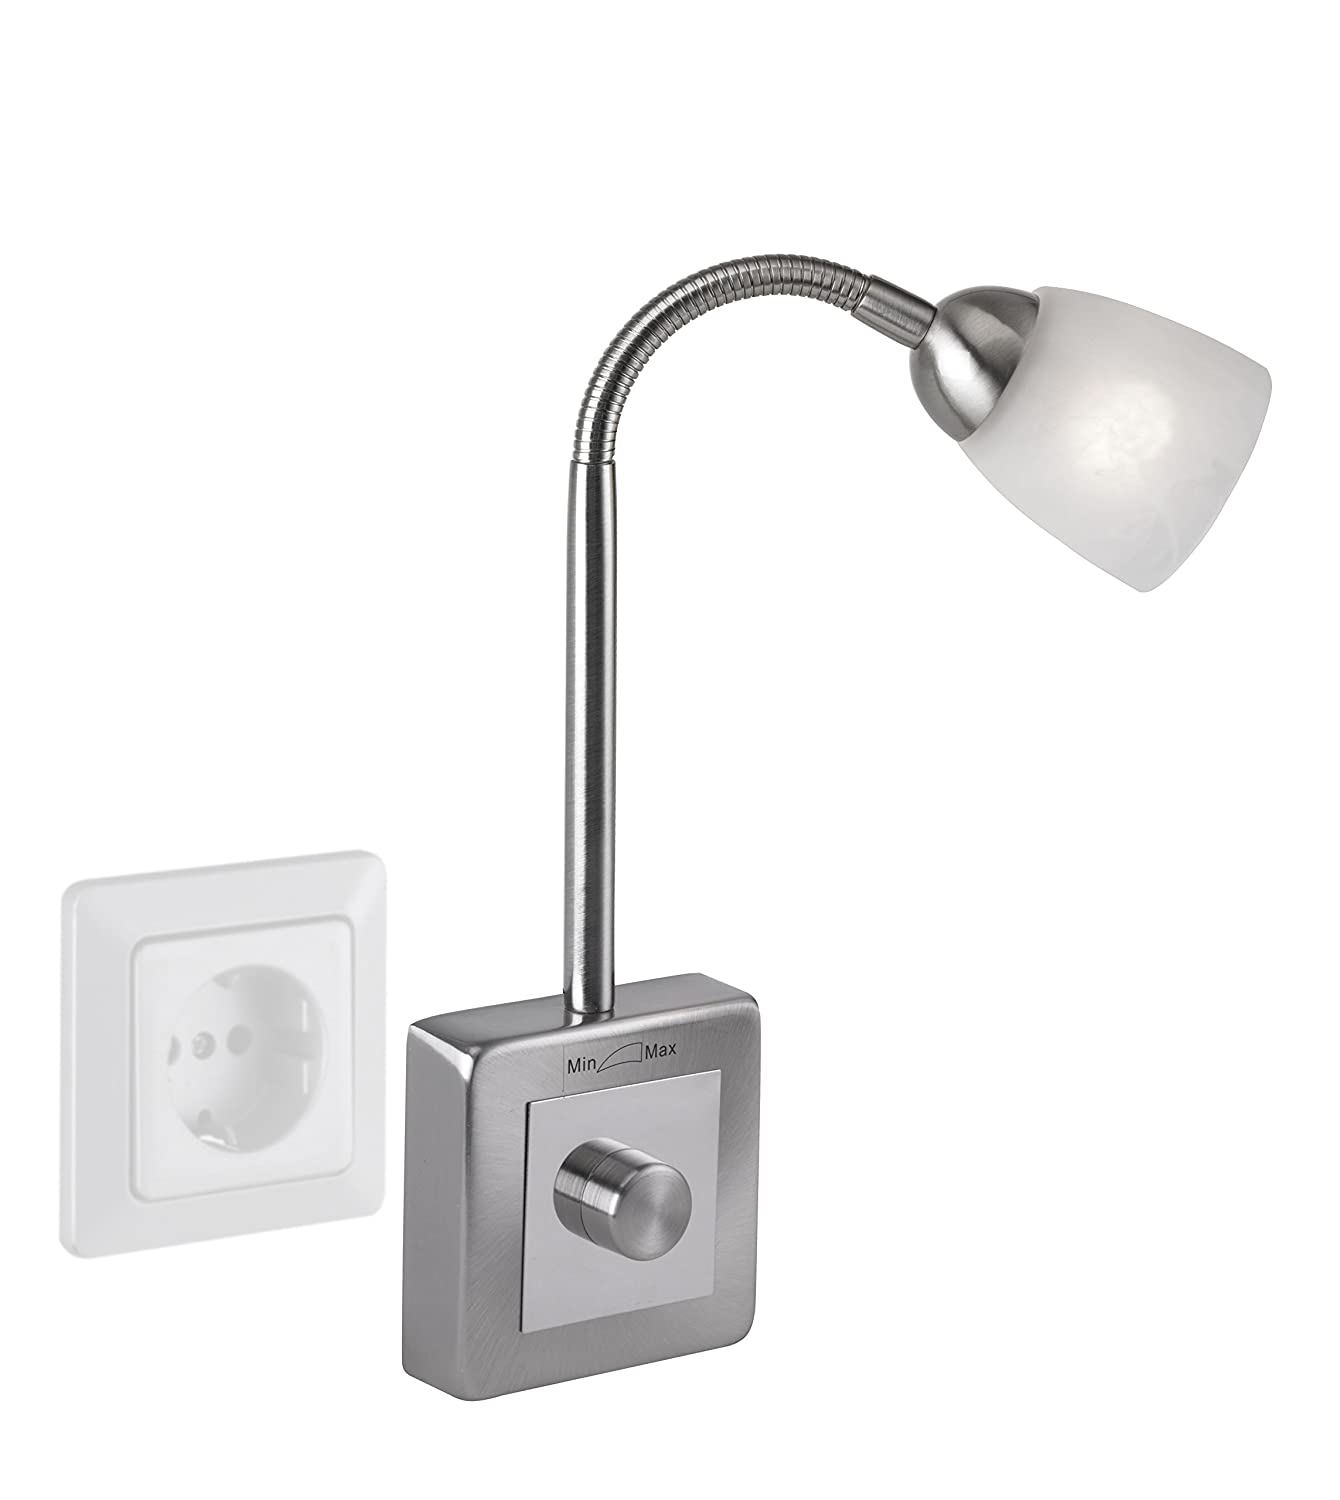 Wall lamp plug in paul neuhaus 1290 55 amazon lighting mozeypictures Image collections